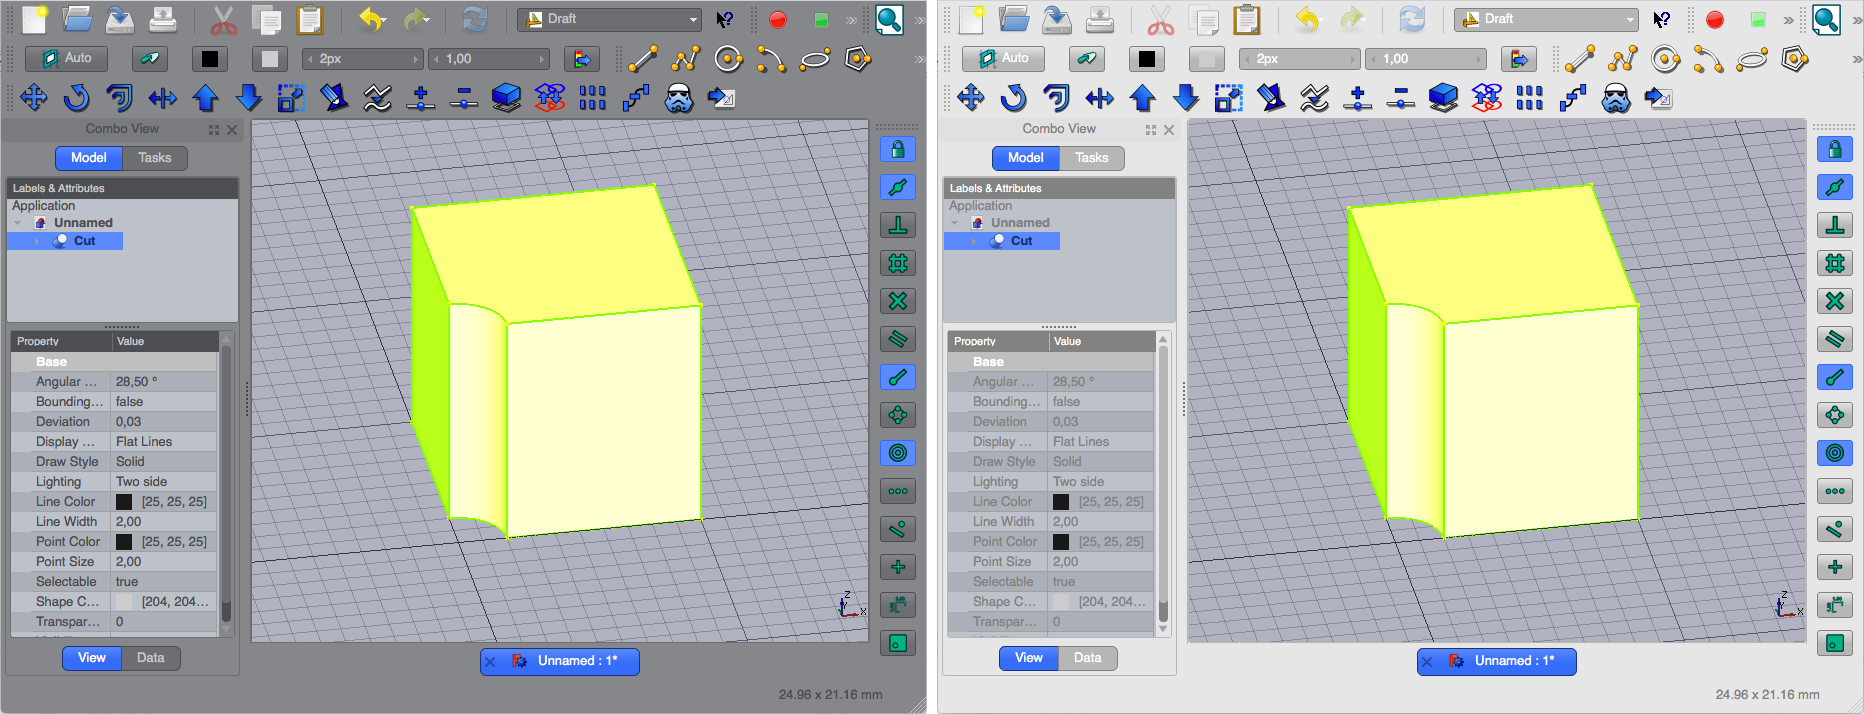 freecad_stylesheets-blue.png